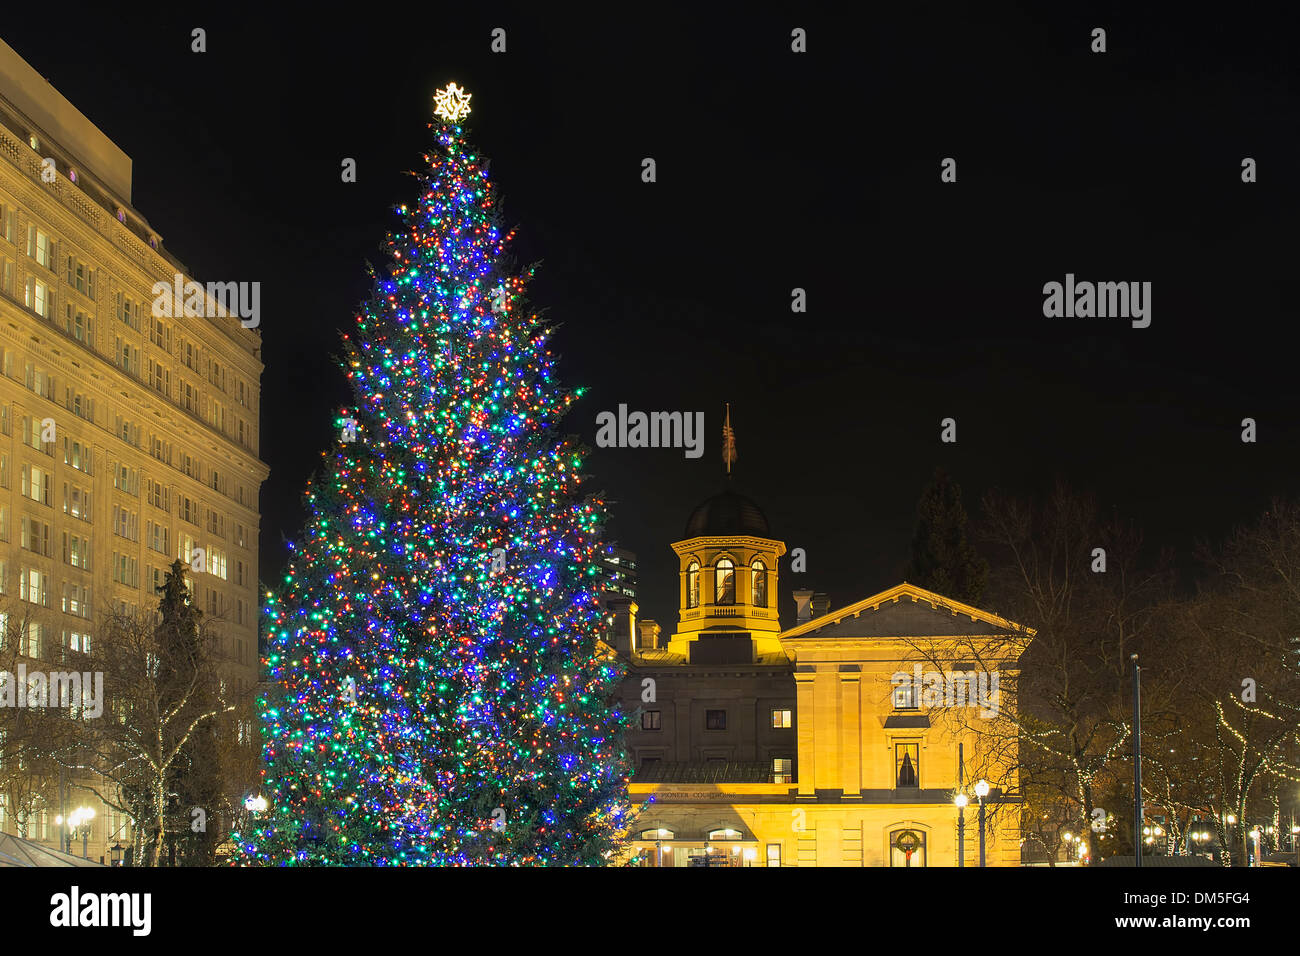 Christmas Holiday Tree at Pioneer Courthouse Square in Portland Oregon Downtown Decorated with Colorful Lights at Night Stock Photo